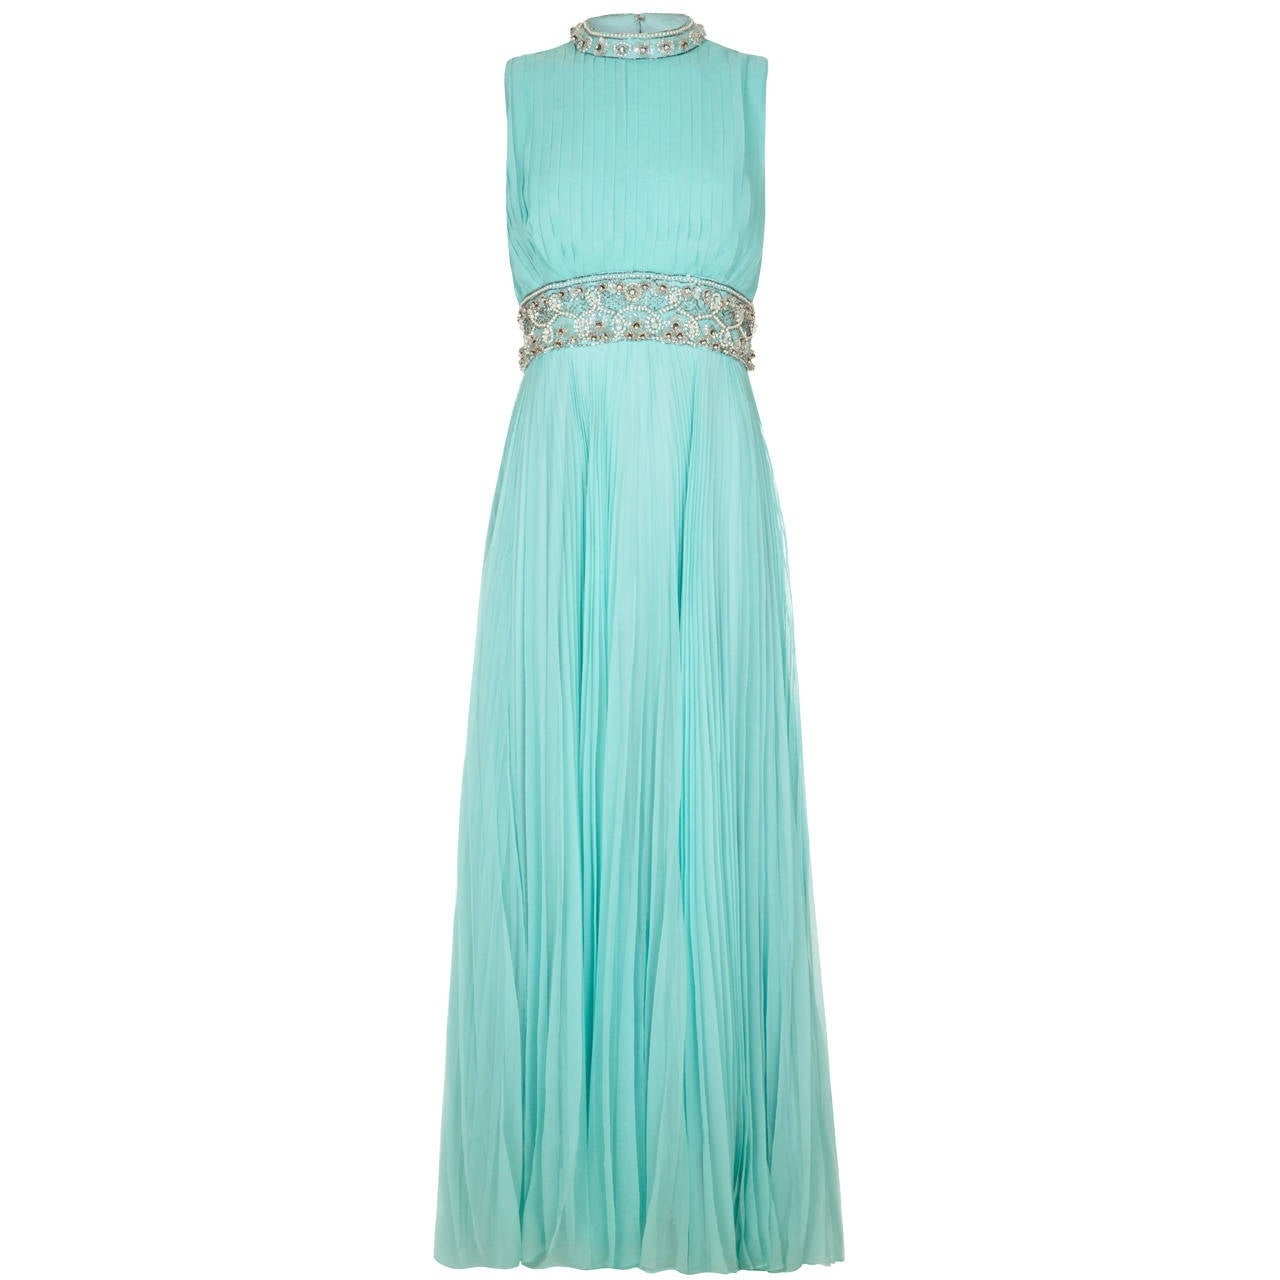 1960s Cerdley Turquoise Pleated Chiffon Beaded Gown For Sale